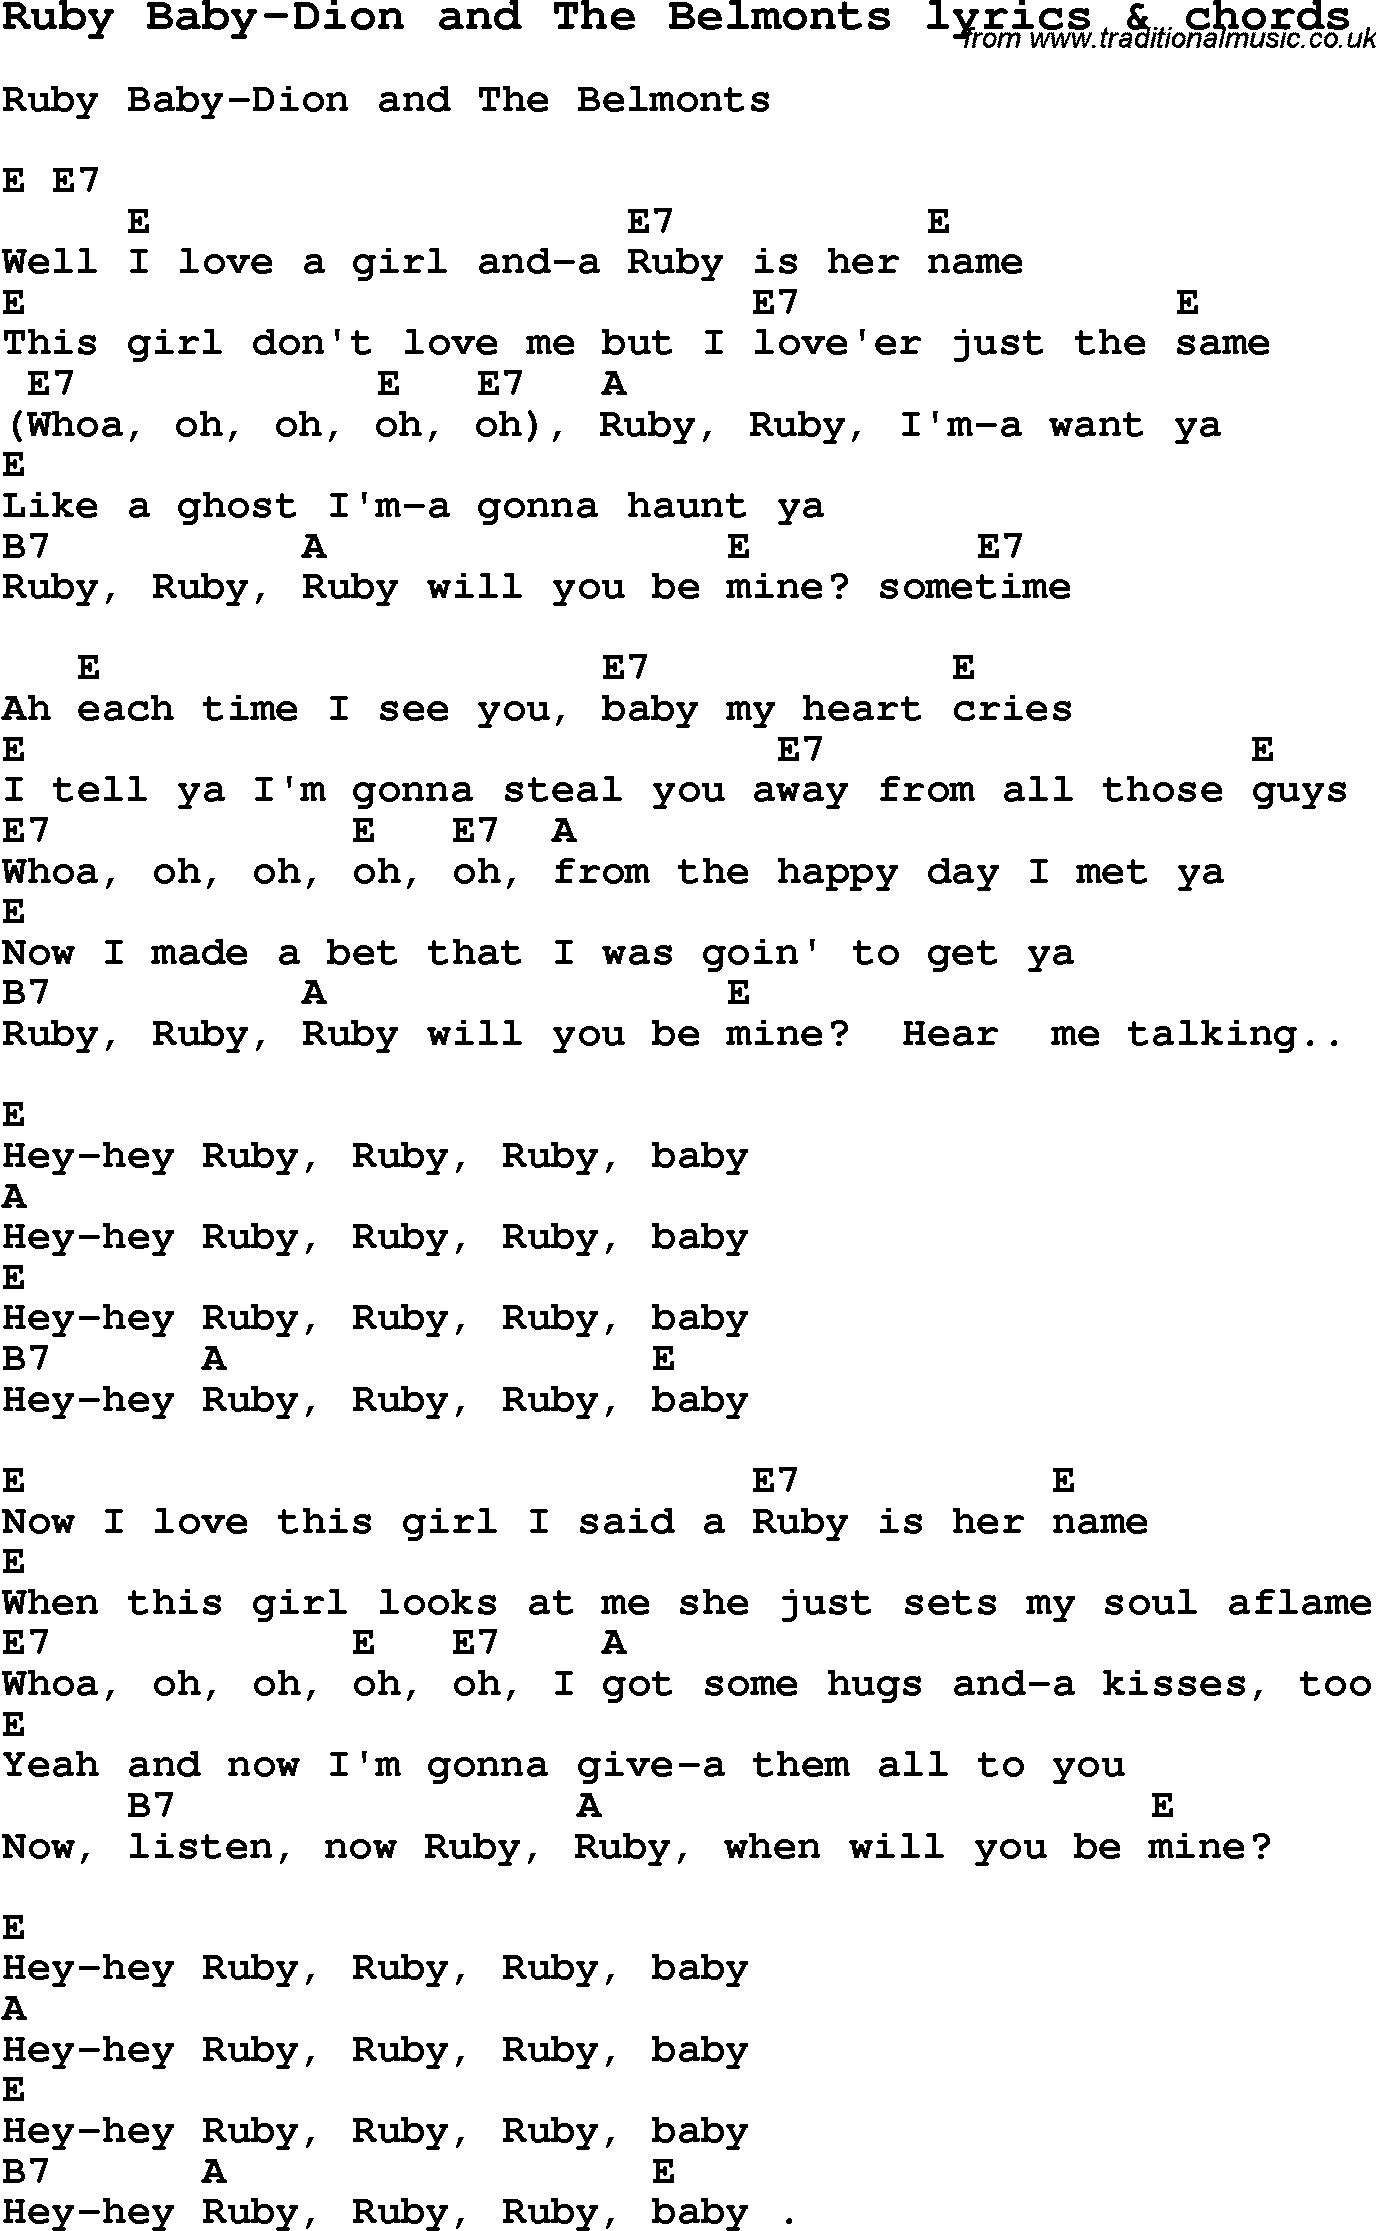 Love song lyrics forruby baby dion and the belmonts with chords love song lyrics for ruby baby dion and the belmonts with chords for ukulele hexwebz Image collections